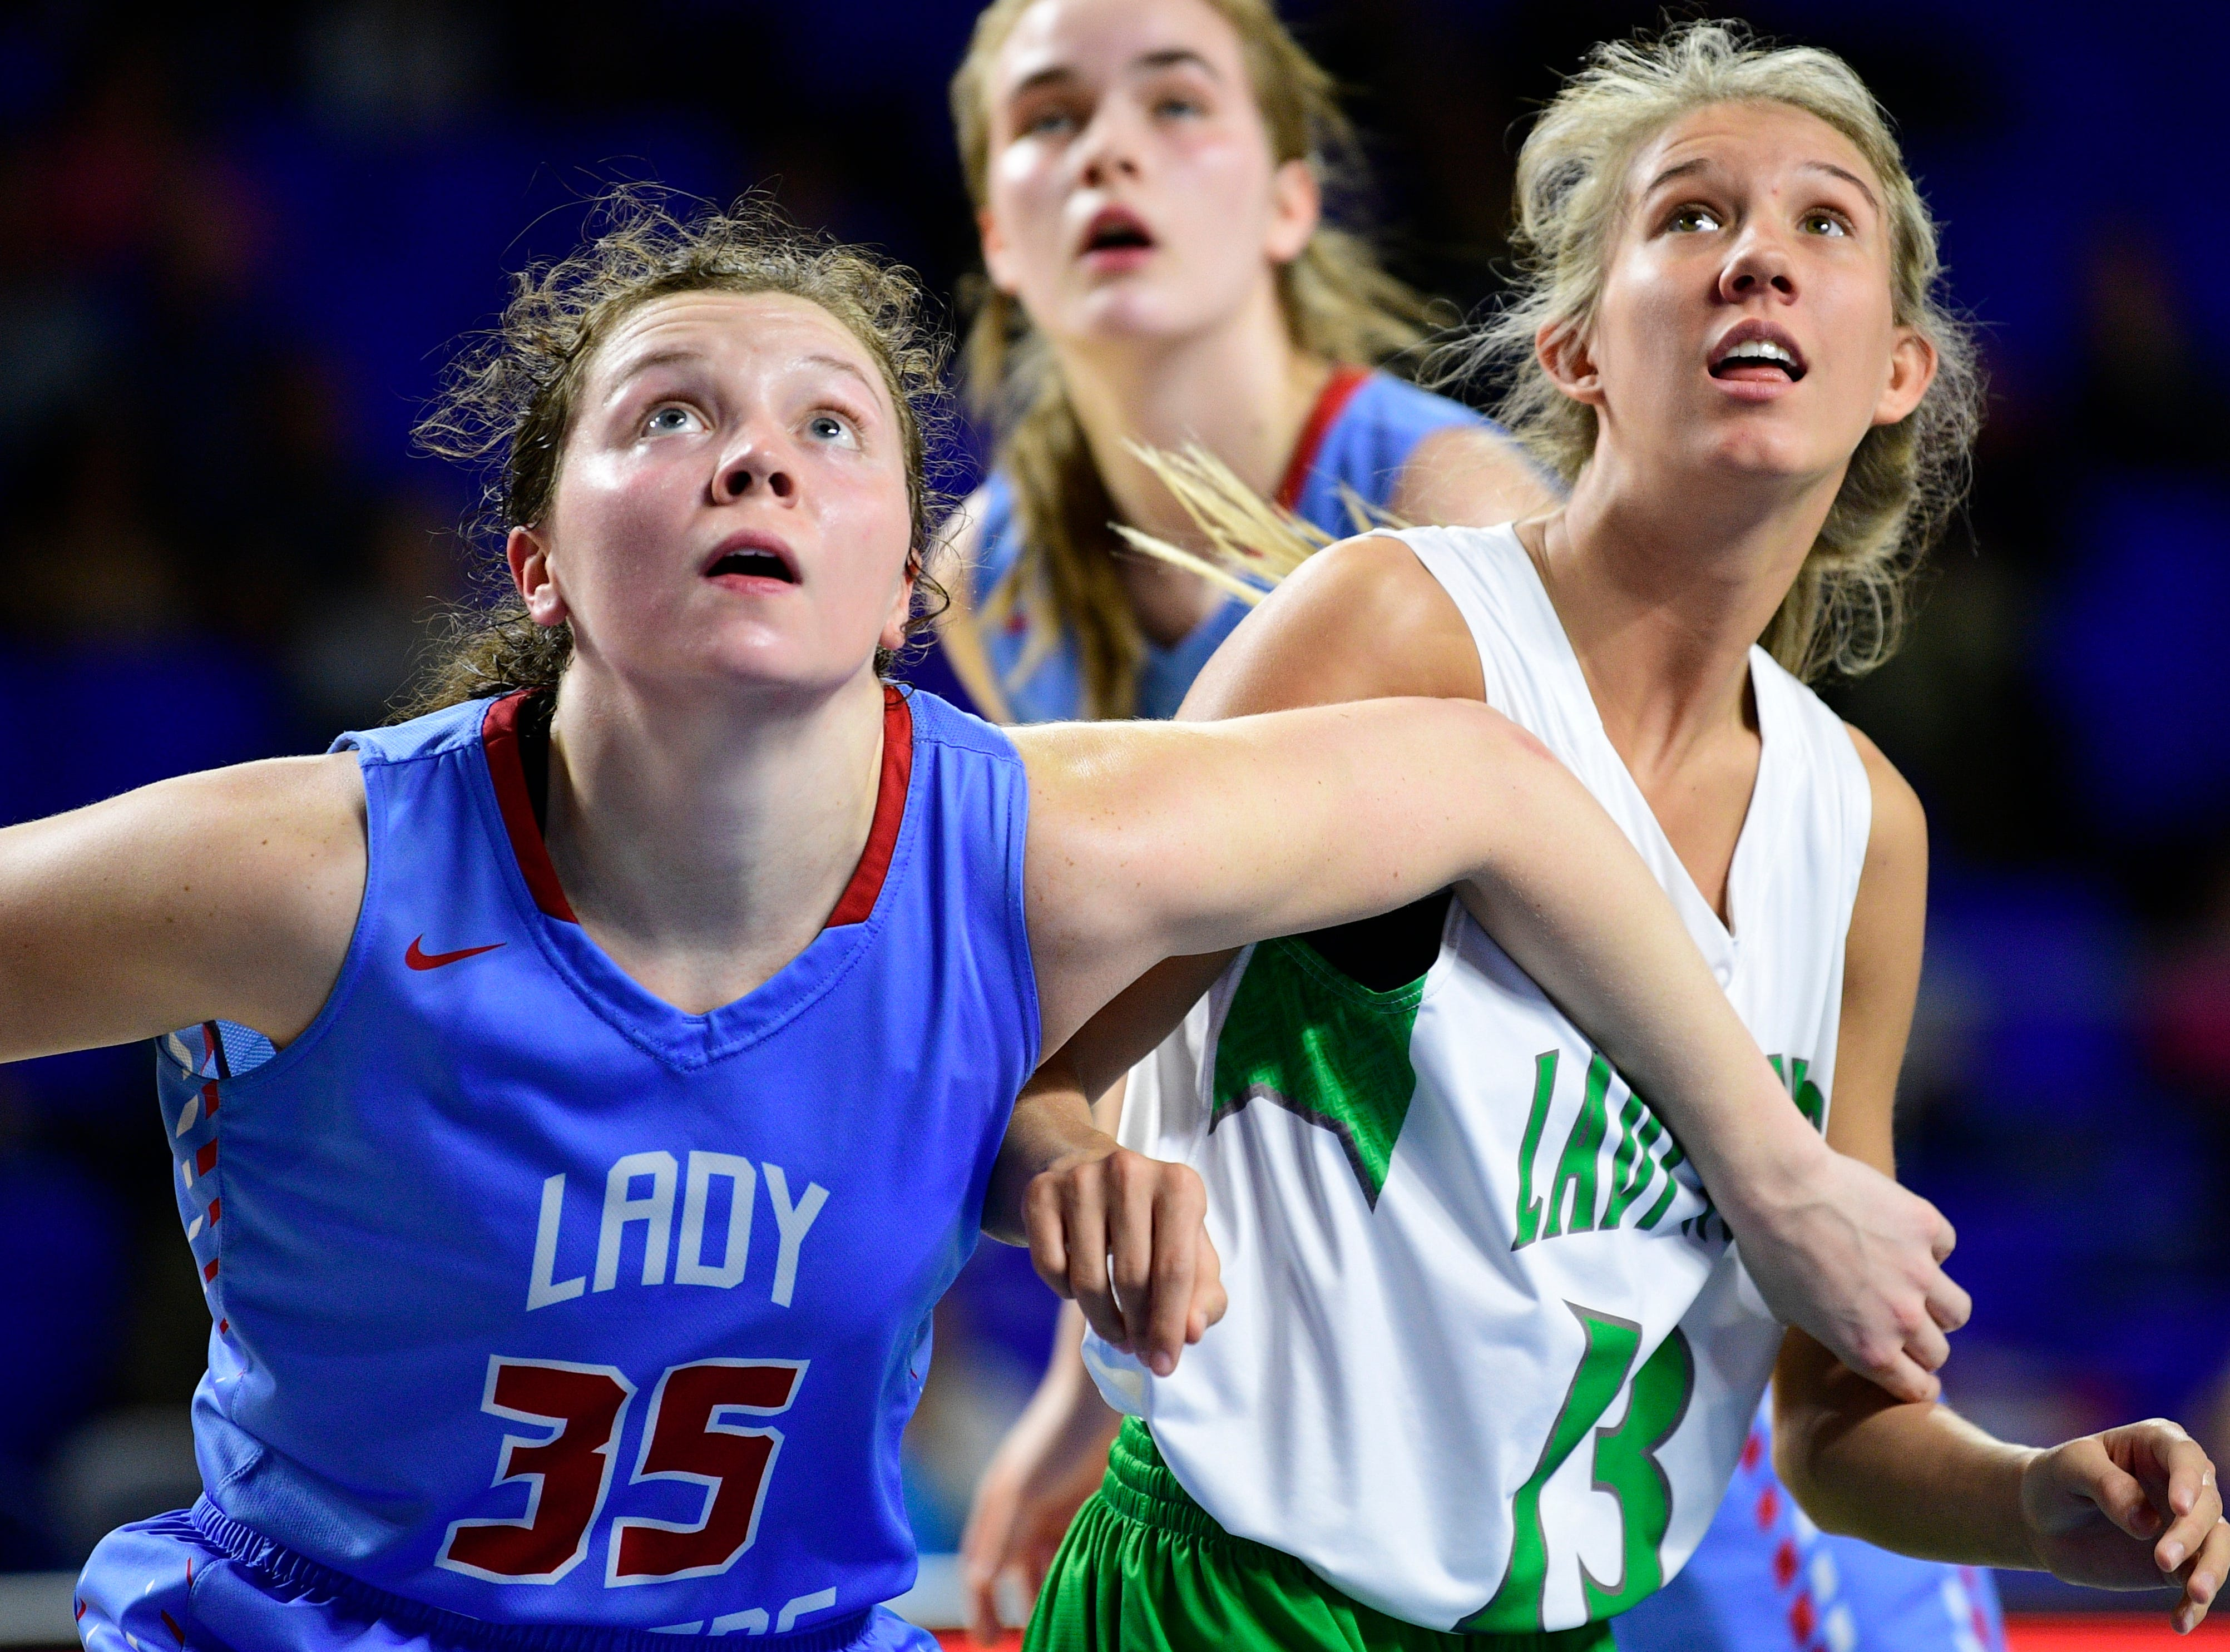 Gibson County's Hannah Ball (35) and Midway's Sophia Patterson (13) eye the rebound during a game between Midway and Gibson County at the TSSAA girls state tournament at the Murphy Center in Murfreesboro, Tennessee on Friday, March 8, 2019.